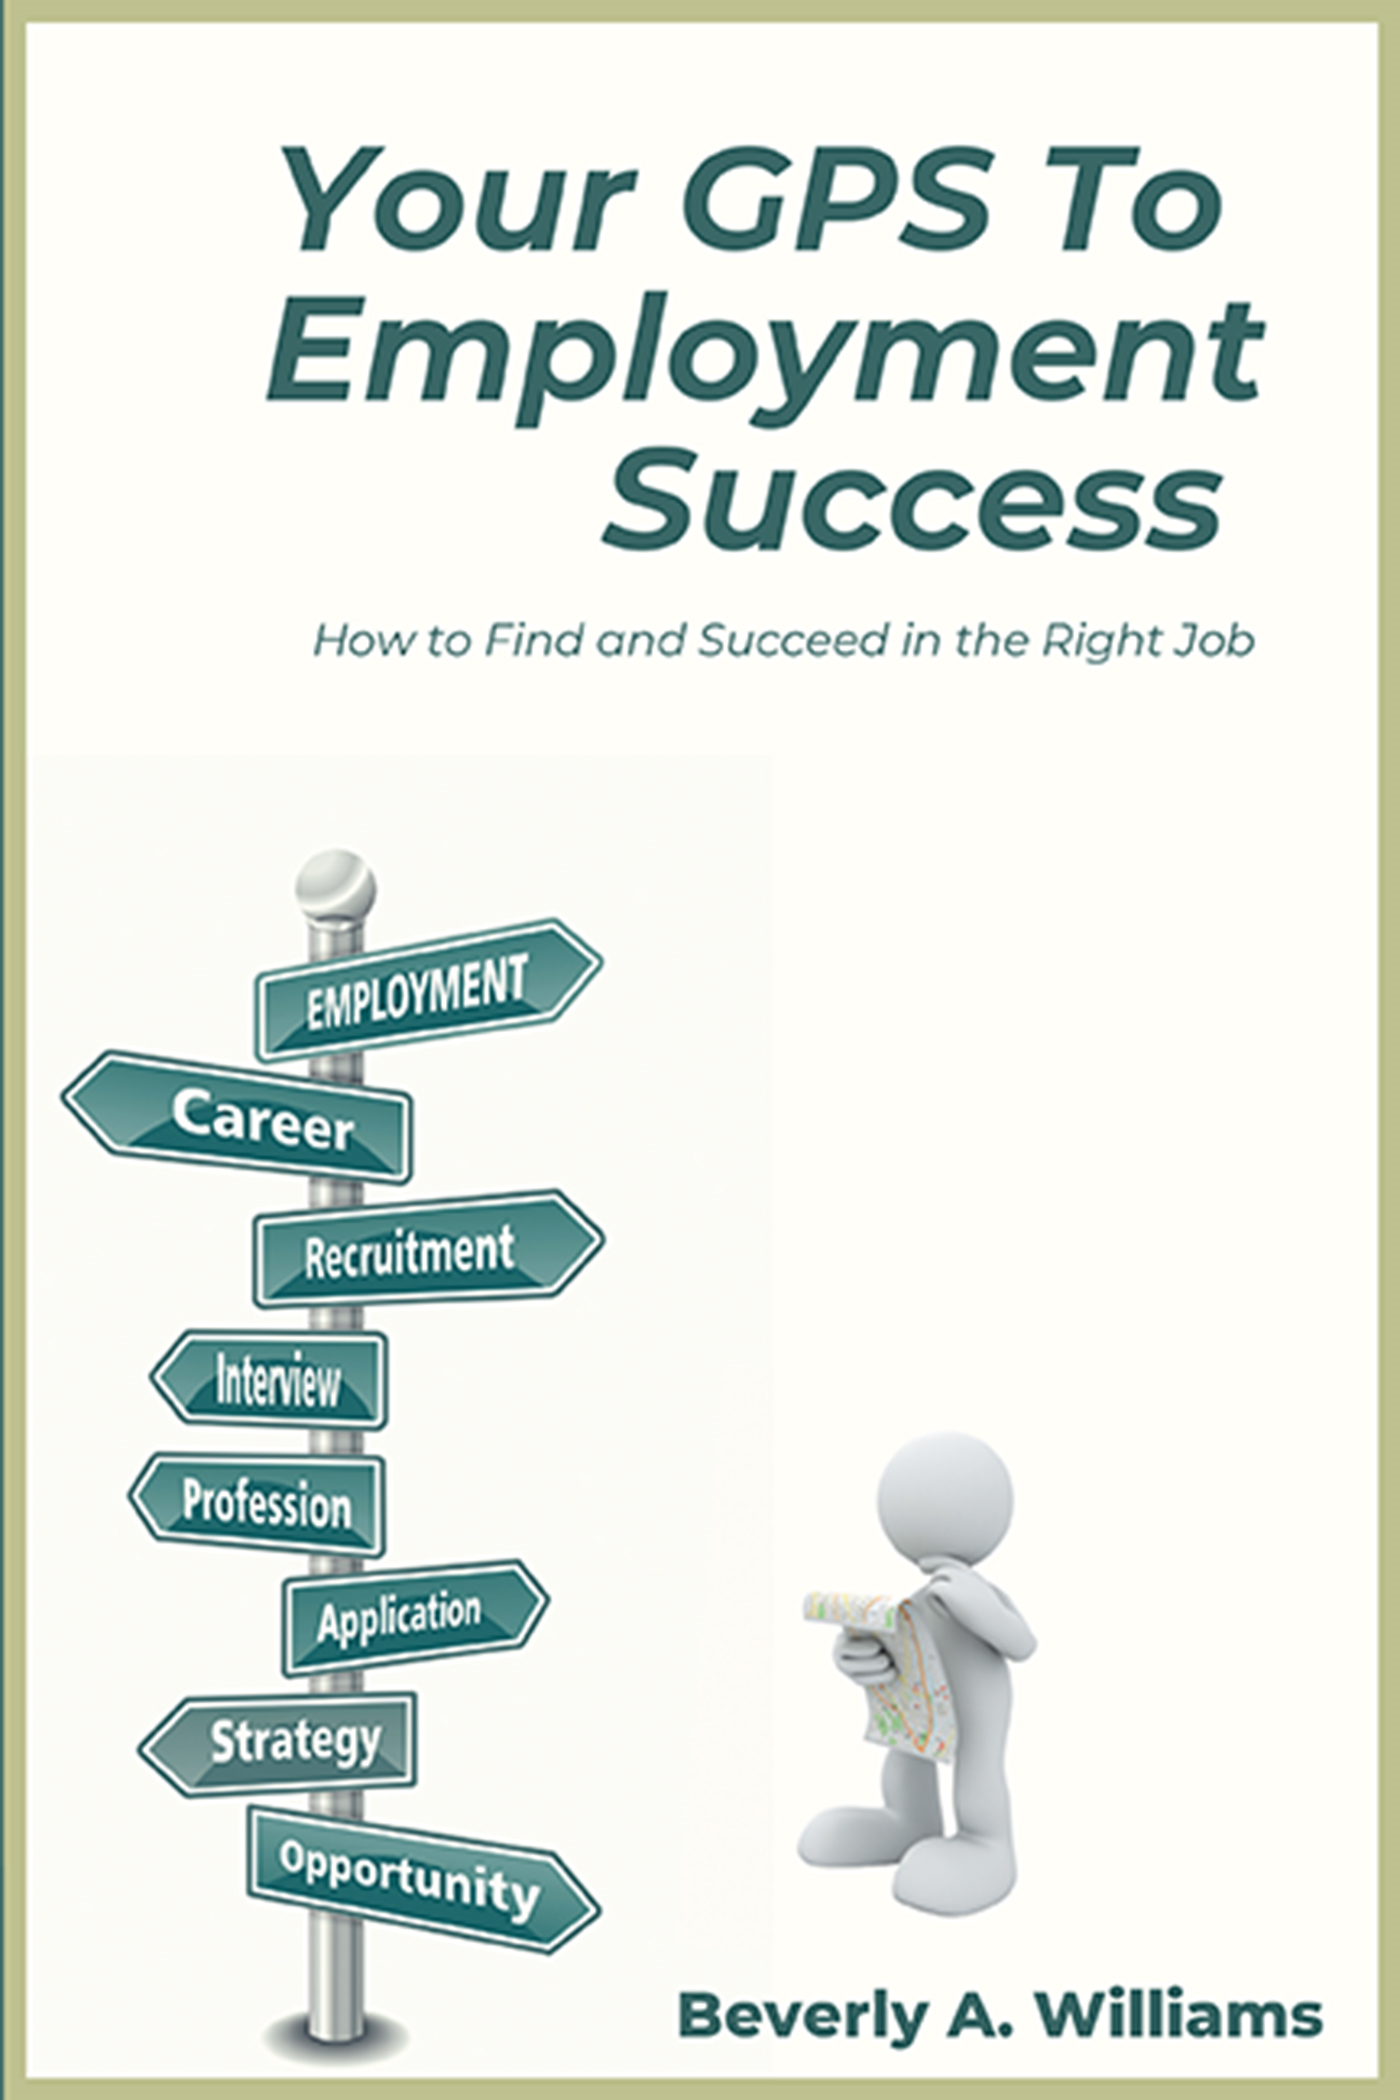 Your GPS to Employment Success: How to Find and Succeed in the Right Job